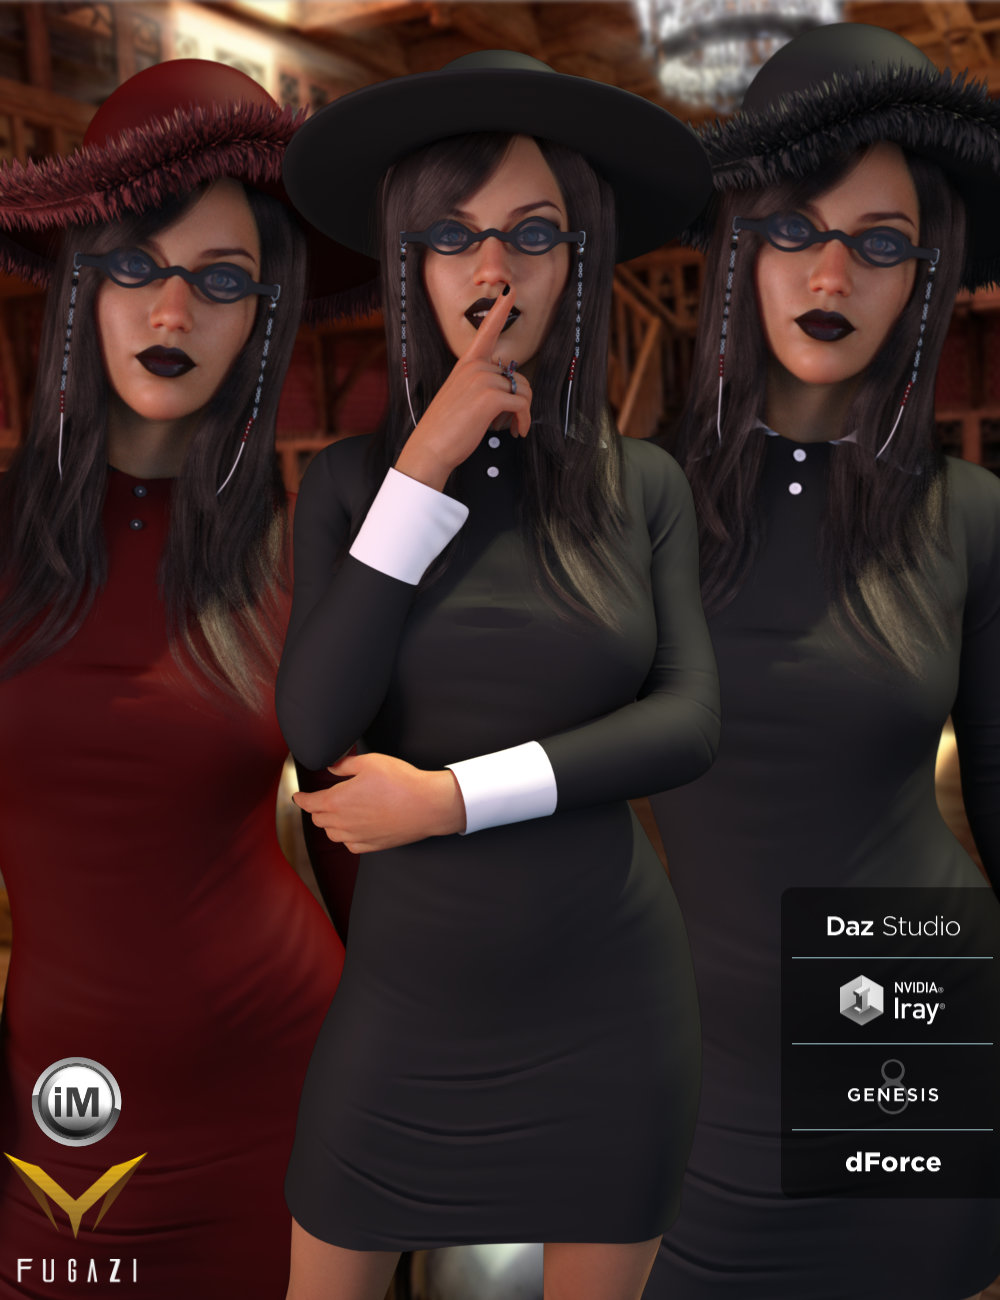 FG Gothic Outfit by: Fugazi1968Ironman, 3D Models by Daz 3D